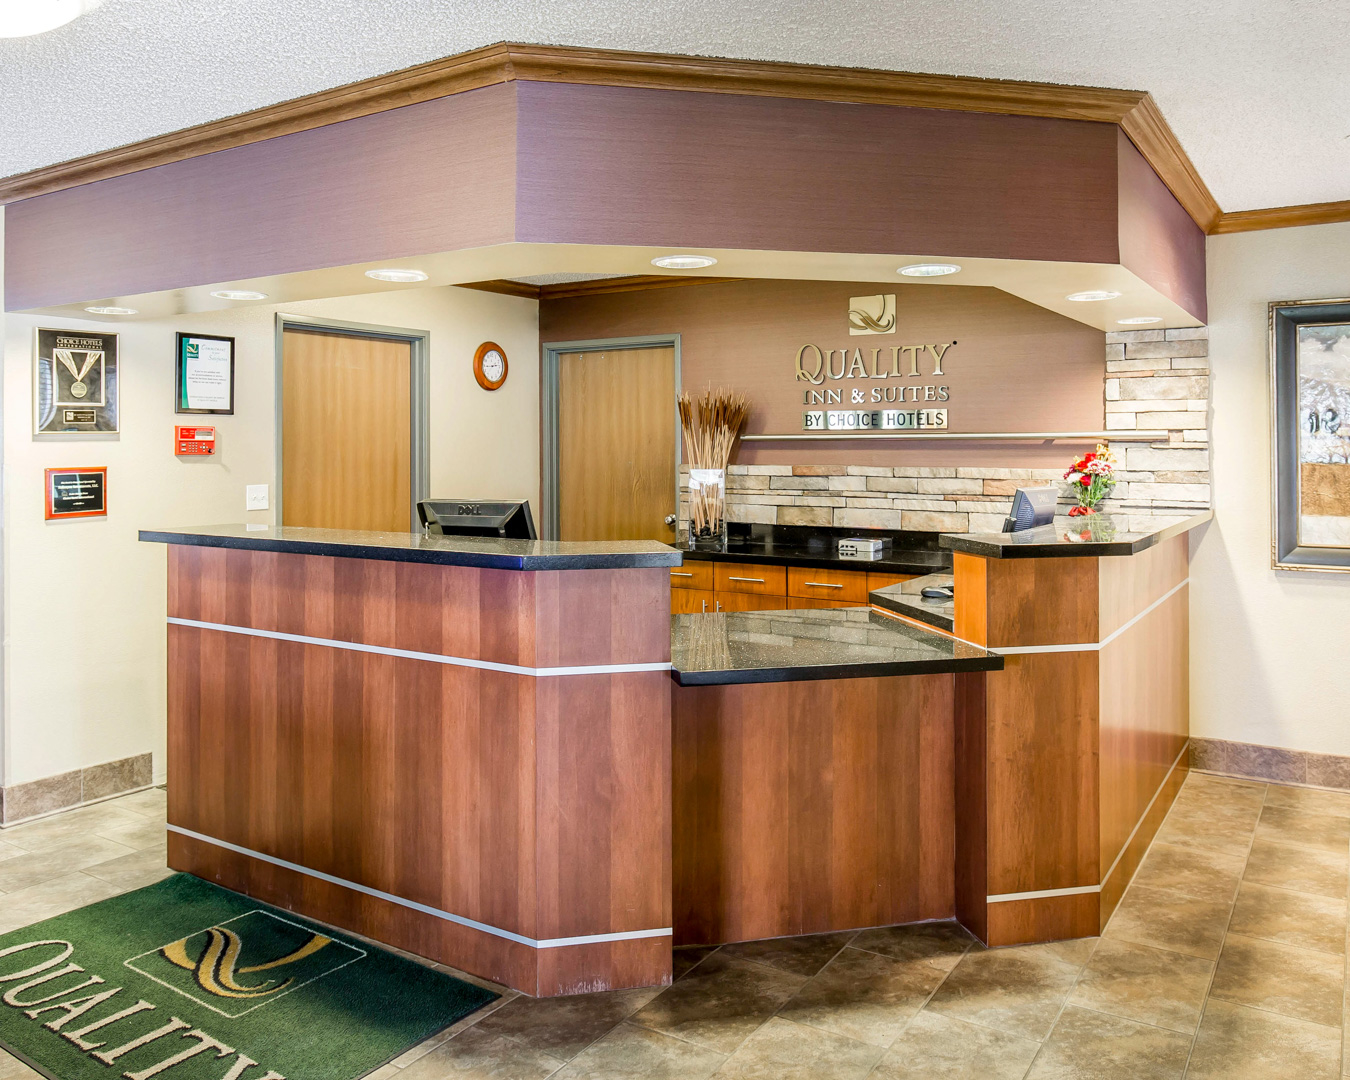 Quality Inn & Suites image 2